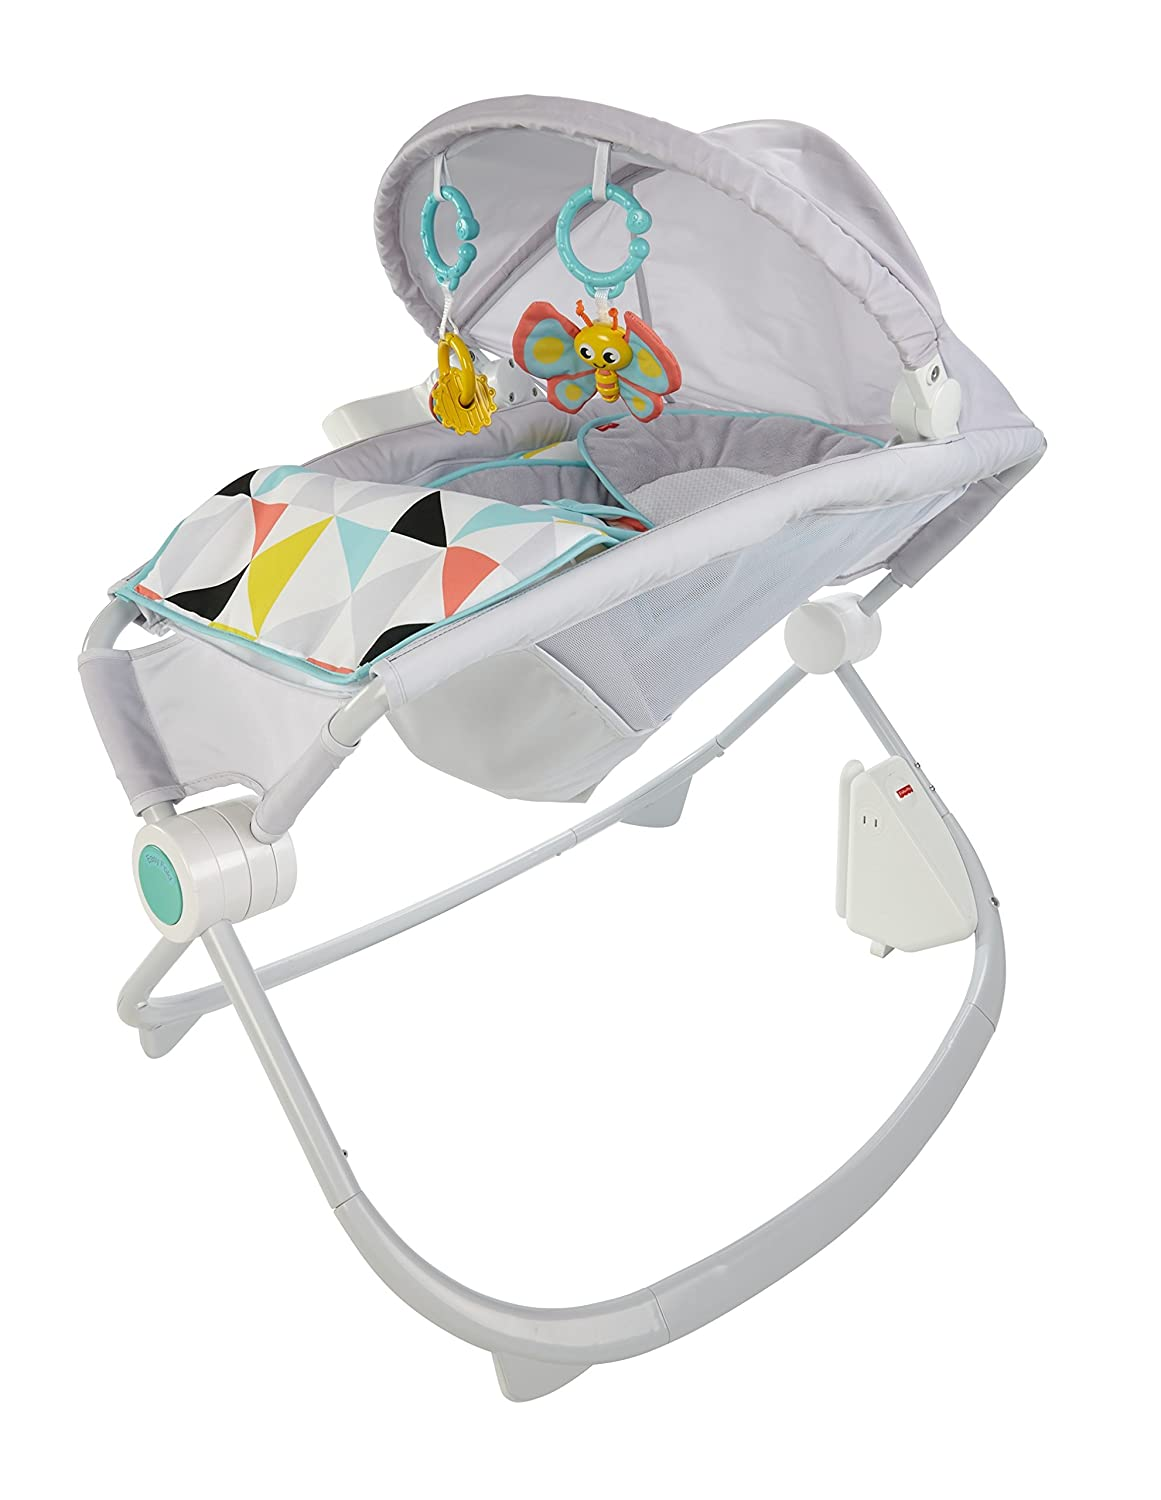 Fisher-Price Premium Auto Rock 'n Play Soothing Seat with SmartConnect FWK51